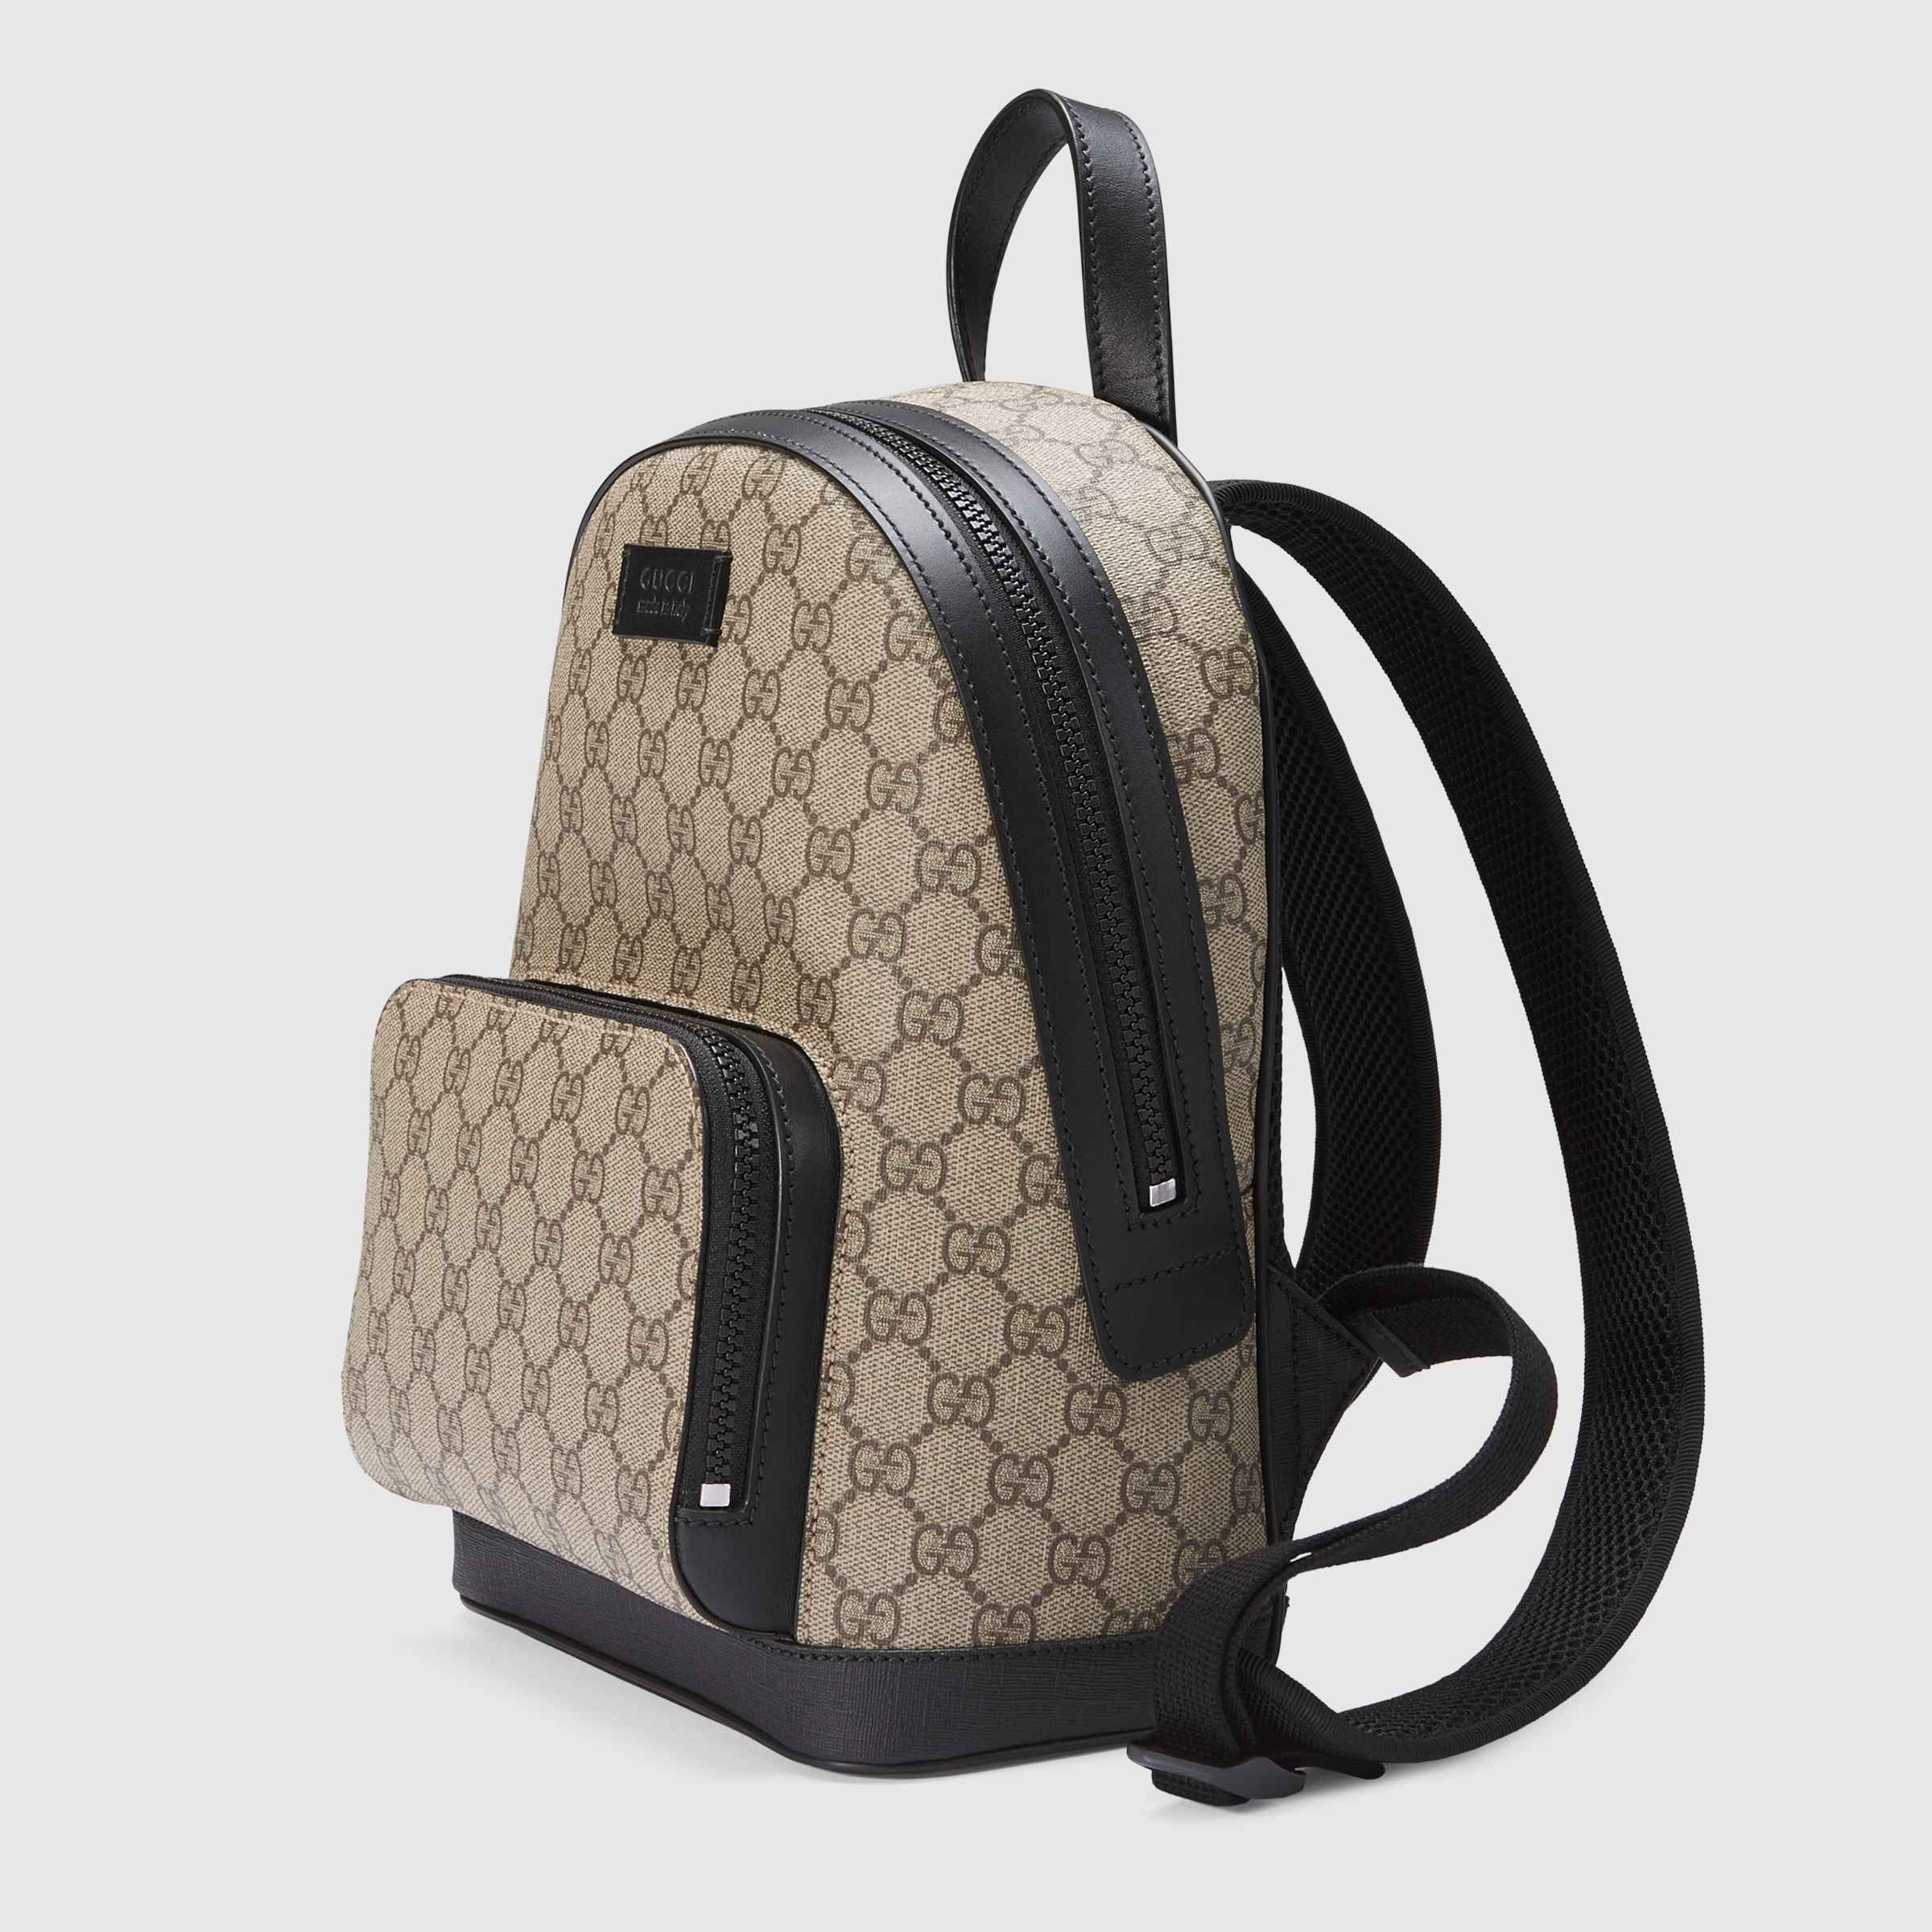 16a20b498 Gucci Small Backpack Black | Building Materials Bargain Center